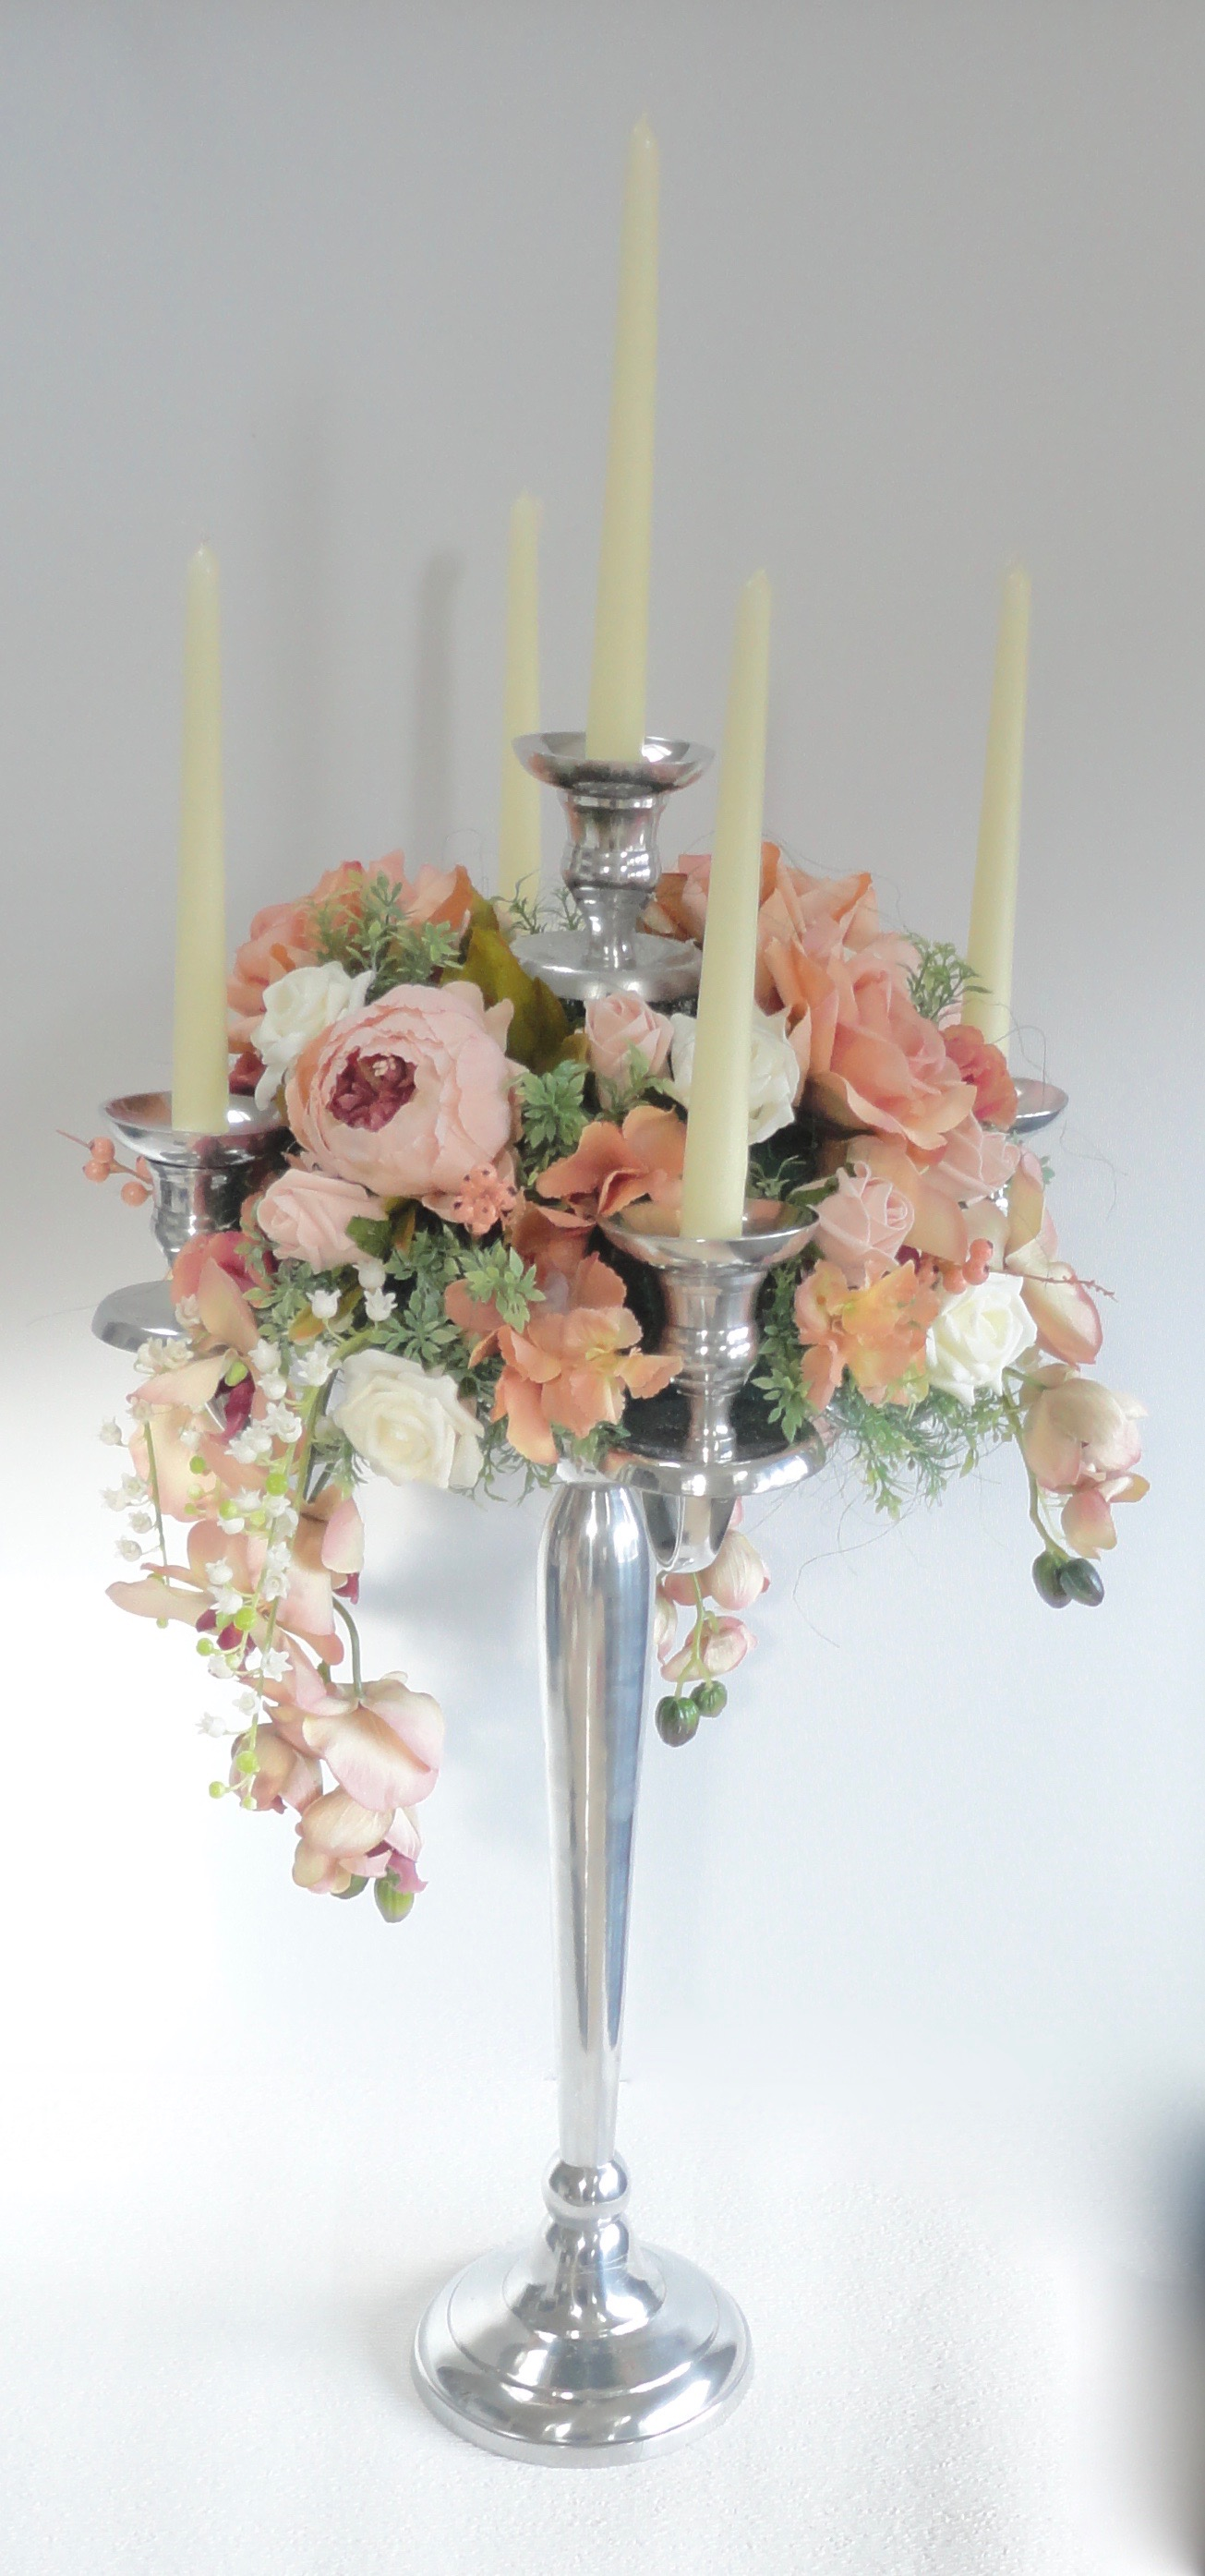 Peach Blush Vintage Style Wedding Centrepiece Wreath for Candelabras